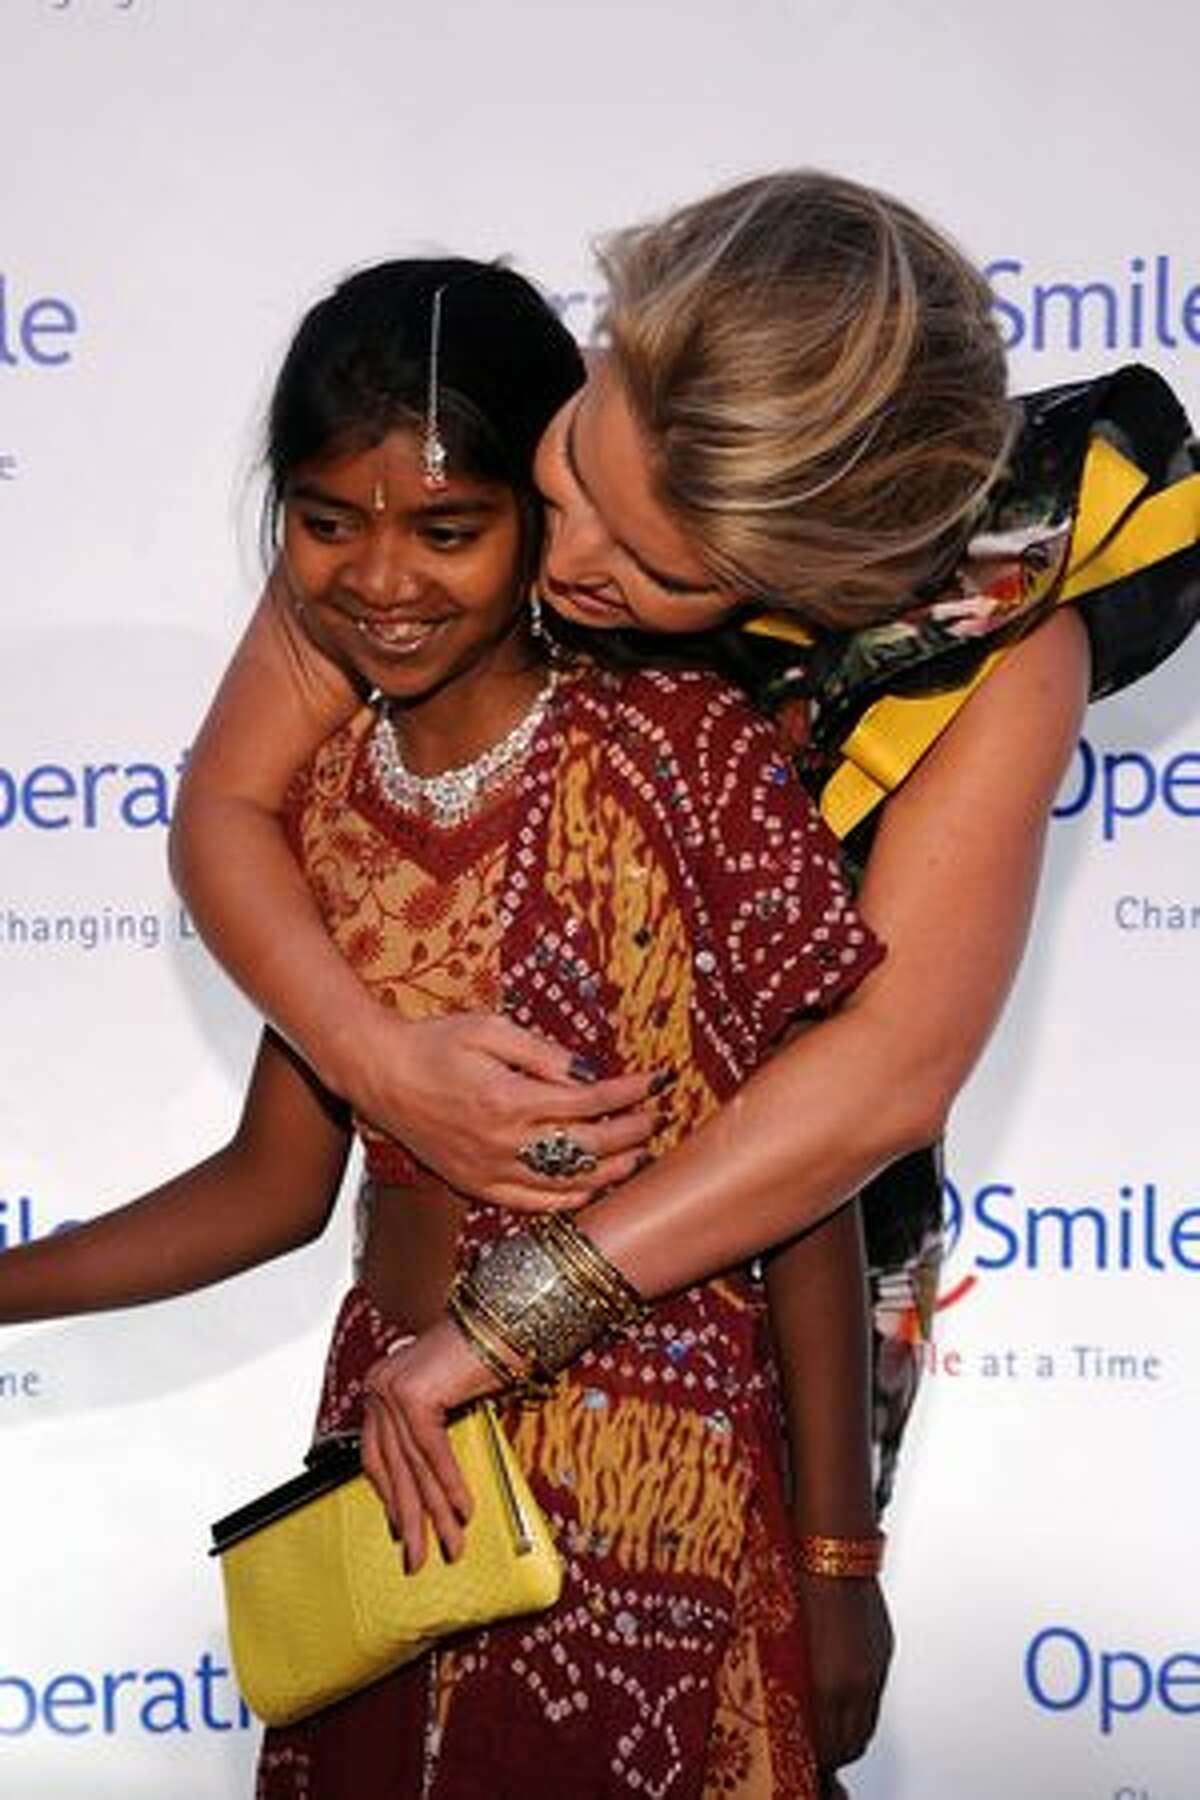 Singer Jessica Simpson and Operation Smile patient Meena attend the 2010 Operation Smile annual gala at Cipriani, Wall Street on May 6, 2010 in New York City.